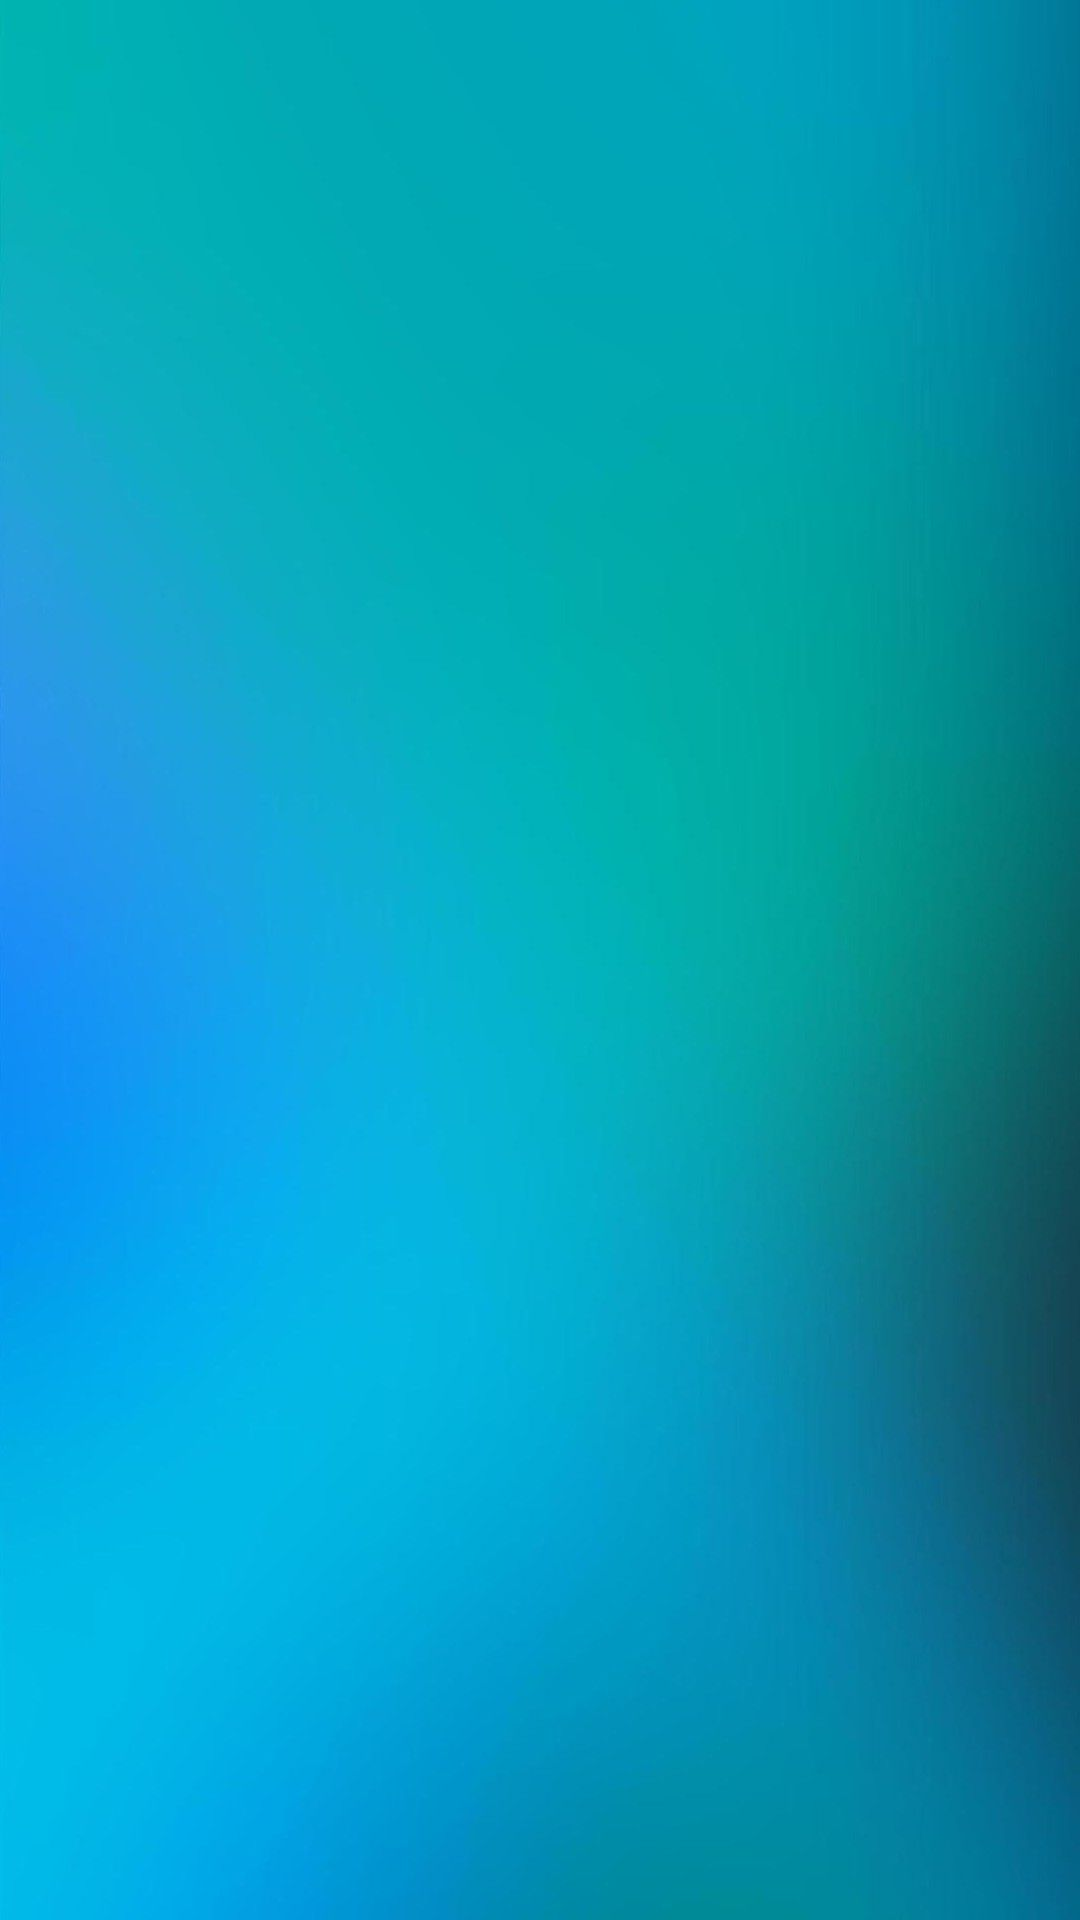 Teal Gradient Wallpapers Top Free Teal Gradient